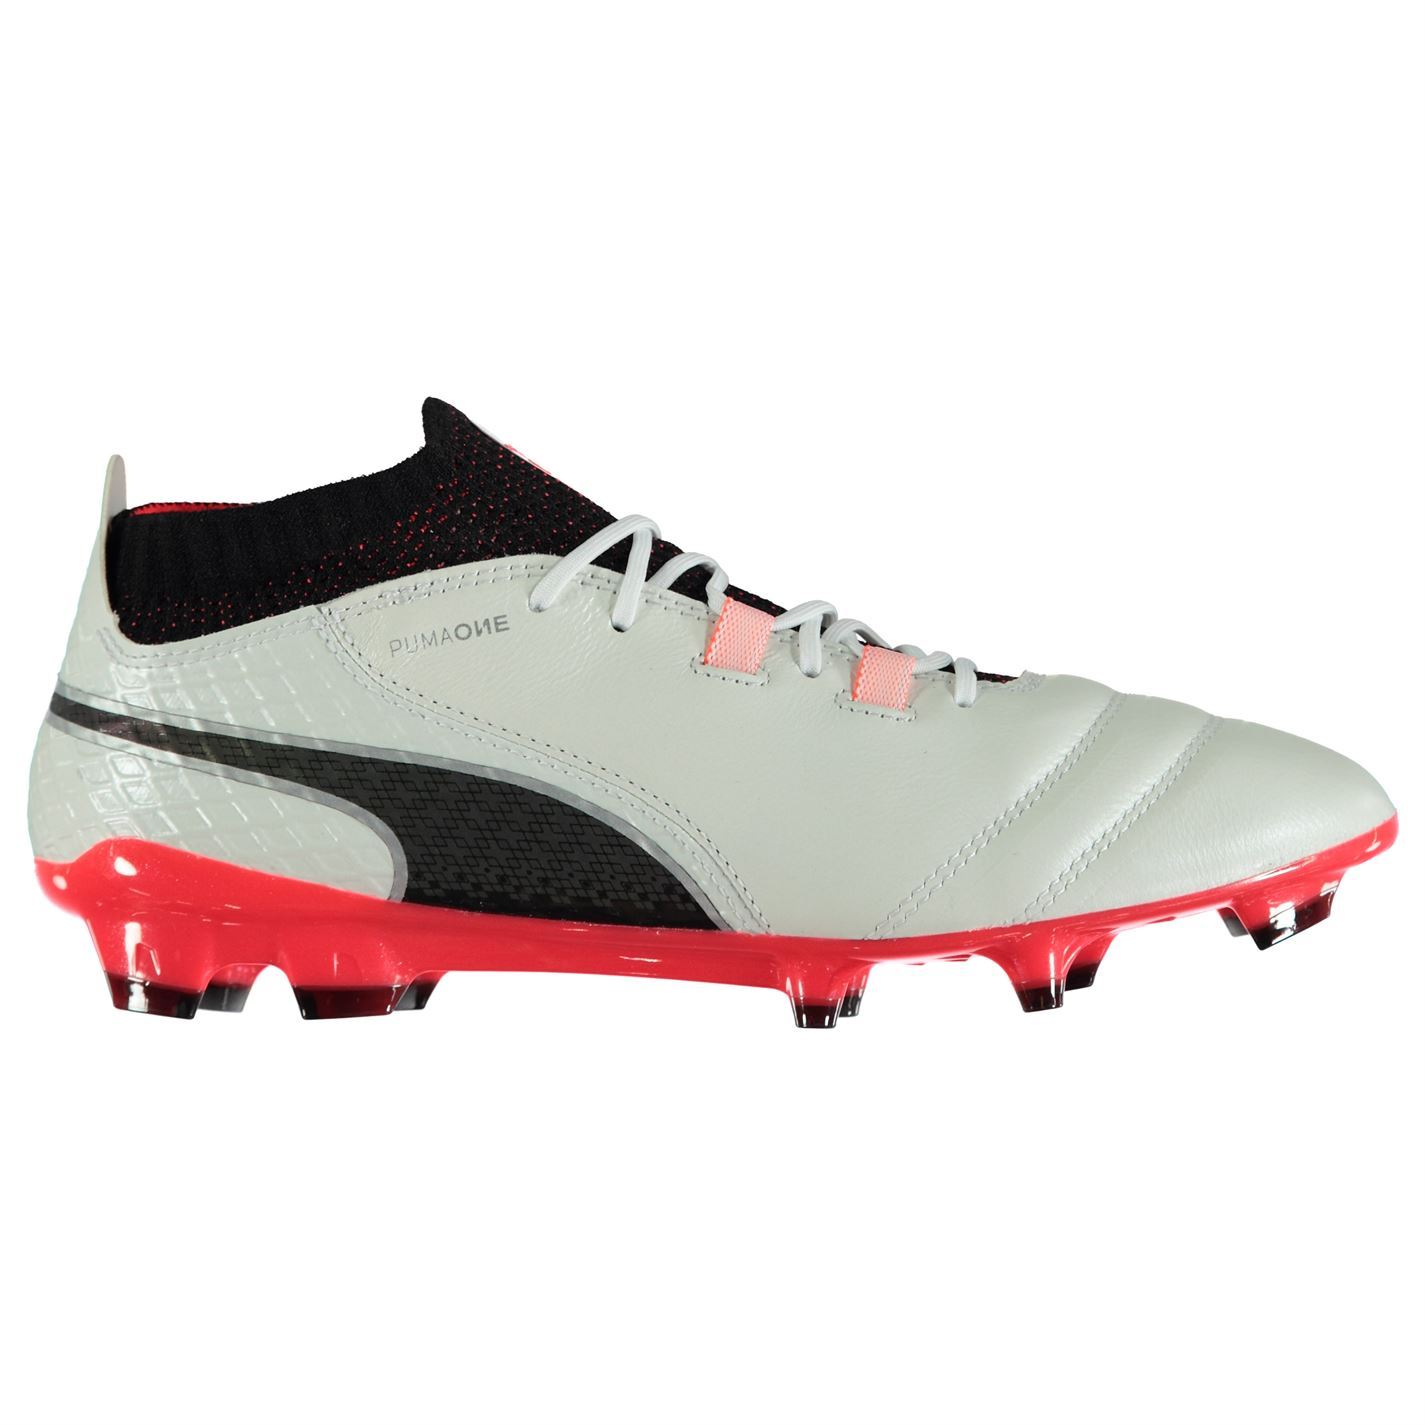 ... Puma One 17.1 FG Firm Ground Football Boots Mens White Coral Soccer  Shoes Cleats ... 8f04c49f5